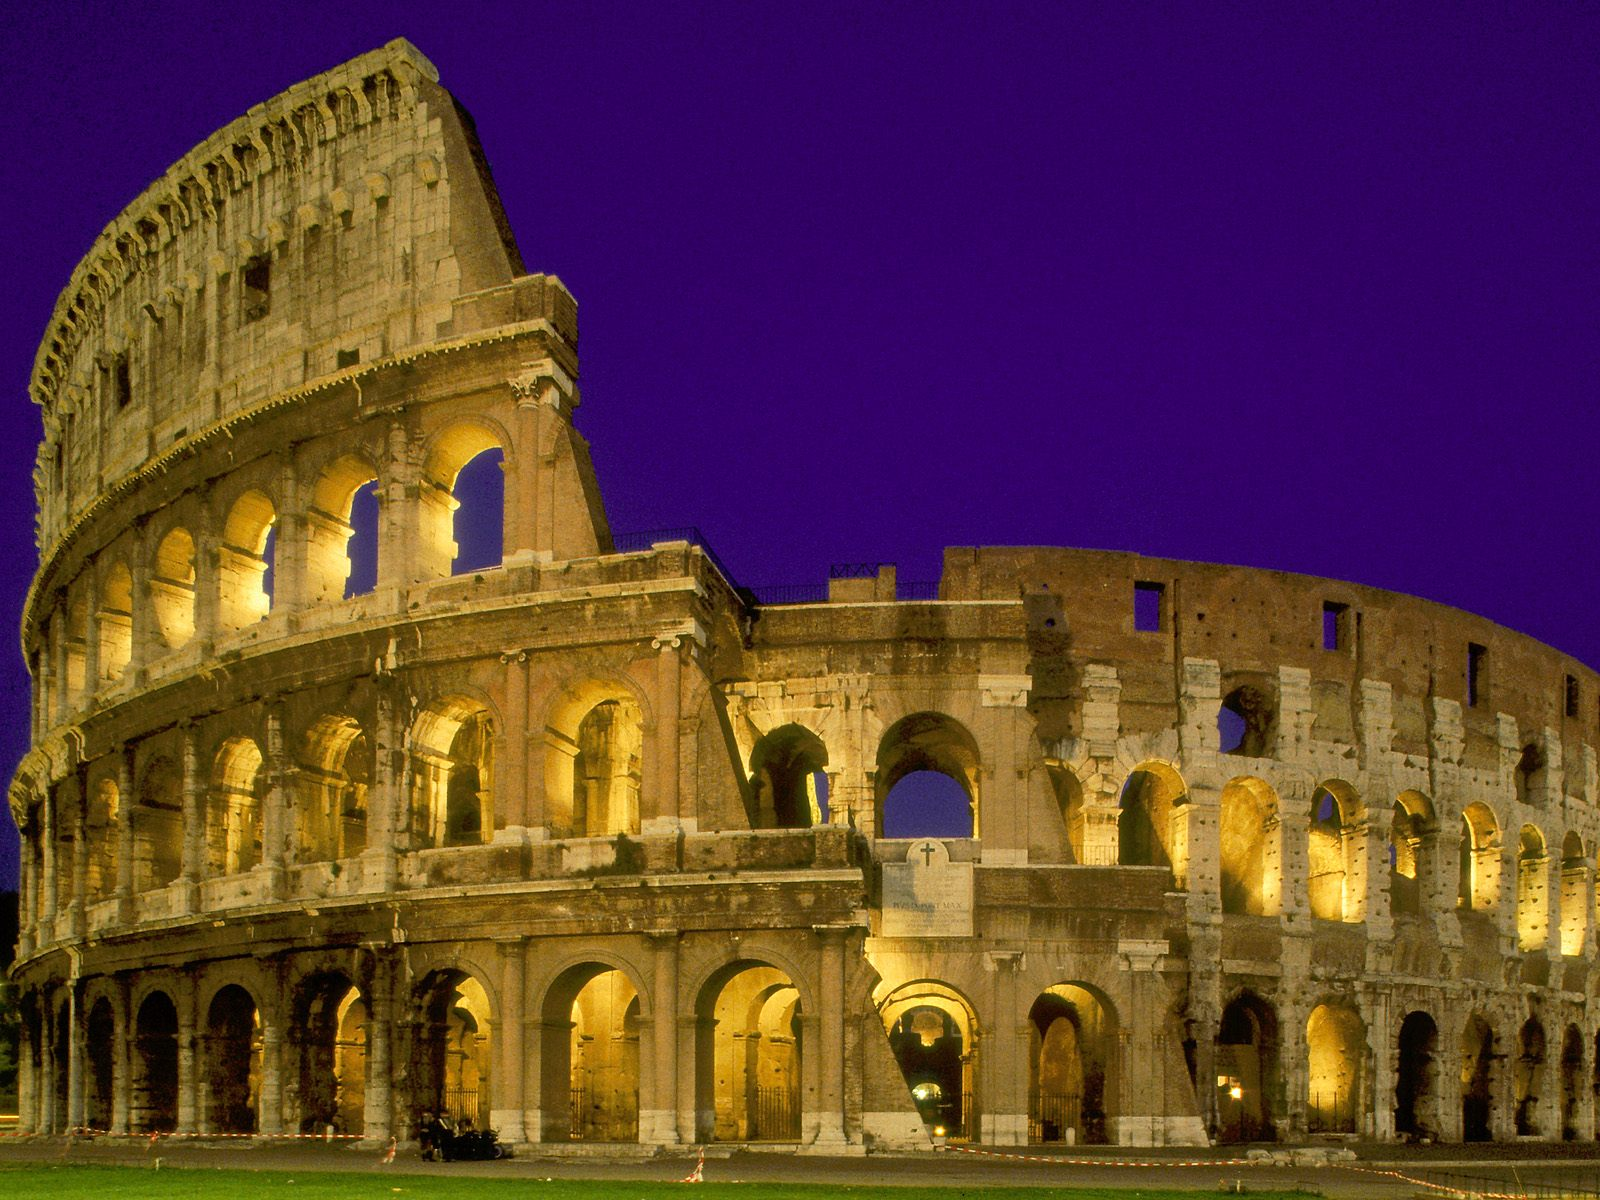 http://3.bp.blogspot.com/_AbeQ-V24DWc/TCOdY0p6L0I/AAAAAAAACsk/GzxgVMR8-Ig/s1600/Wallpapers_The_Coliseum_at_Night_-_Rome_-_Italy.jpg